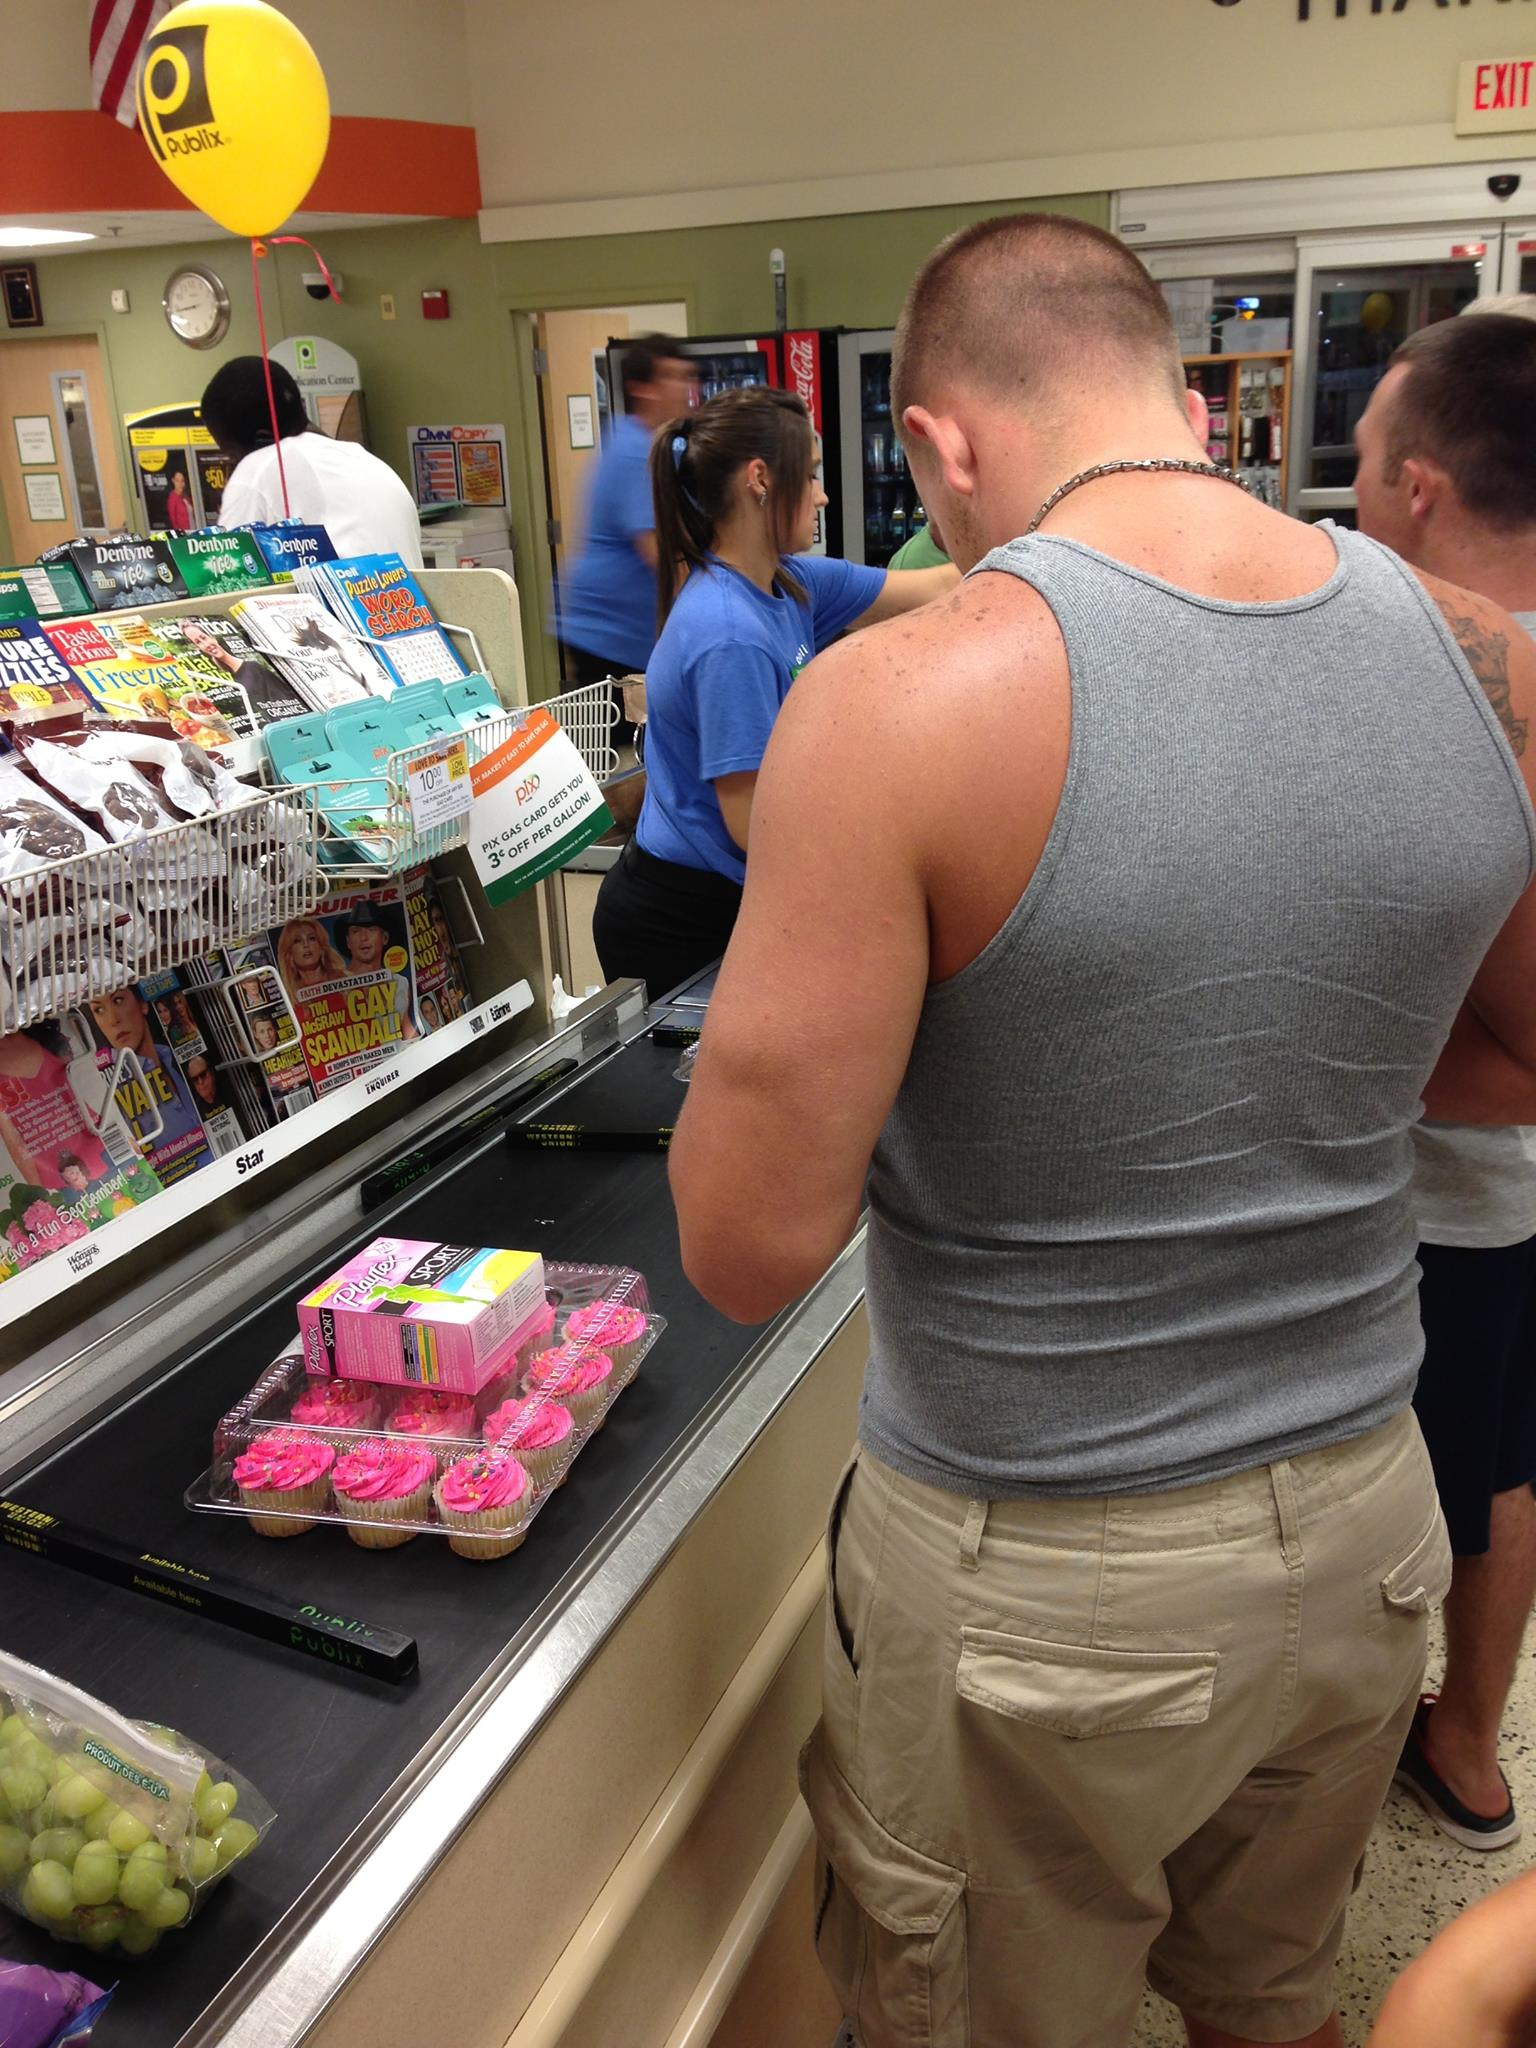 Be like this man. Buying tampons and cupcakes for a very fortunate woman.